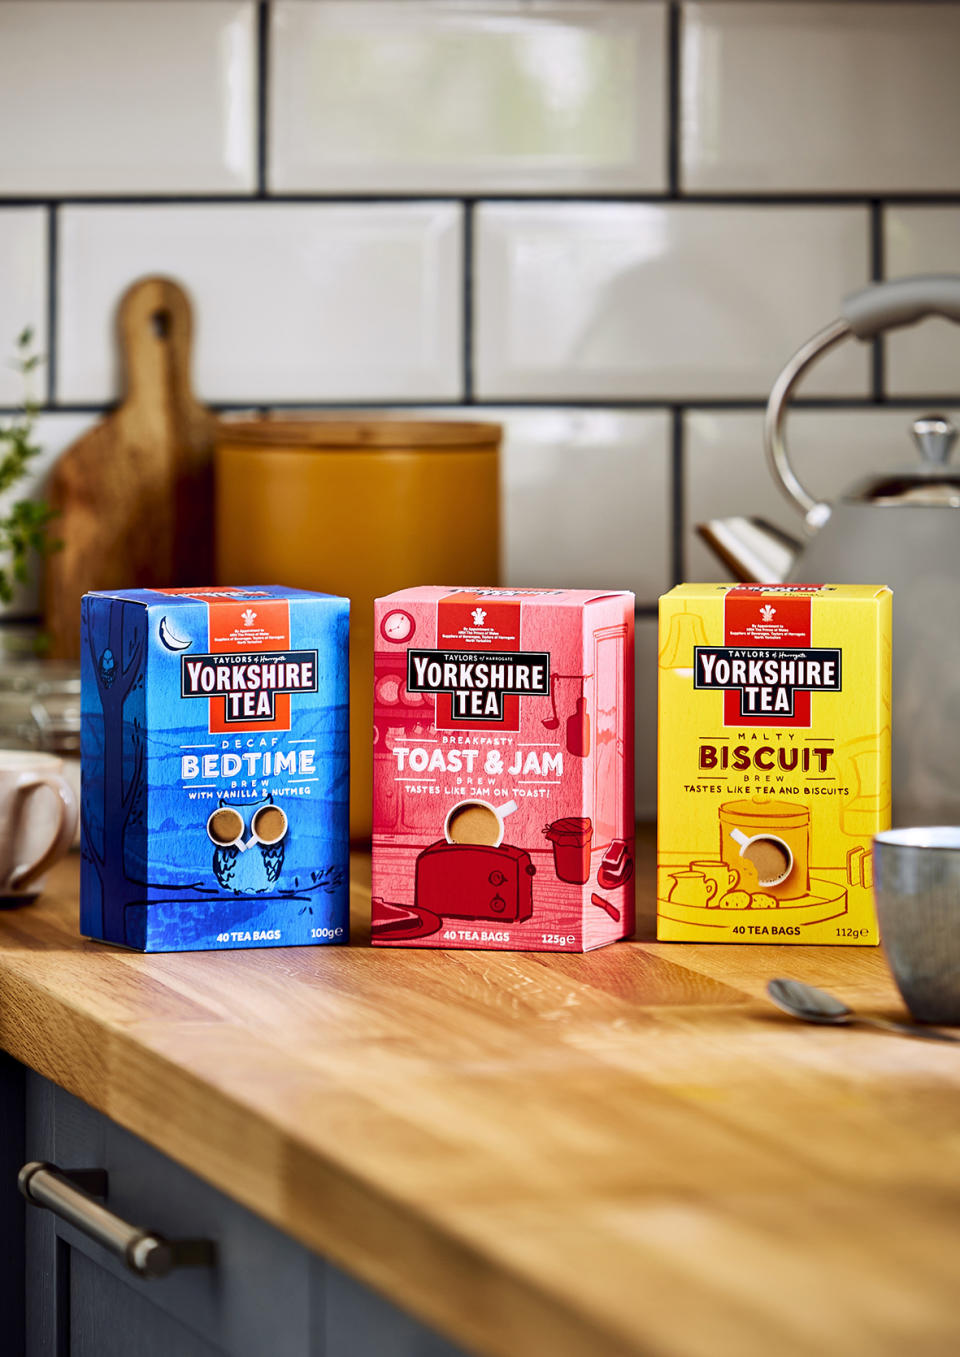 The new Toast & Jam brew joins the biscuit and bedtime teas. (Yorkshire Tea)